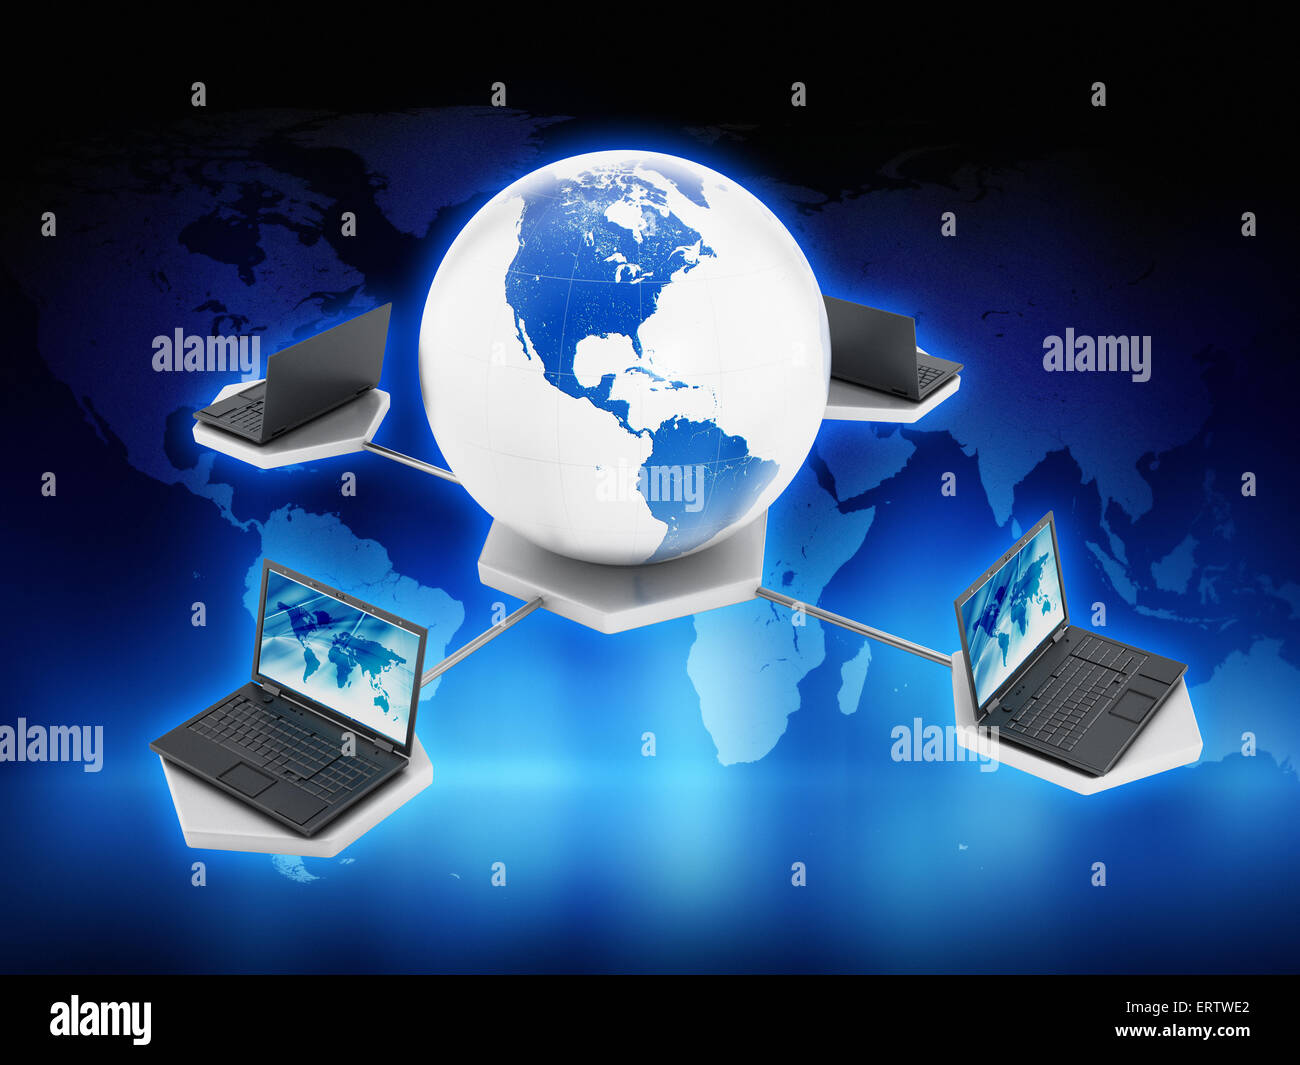 Global computer network on blue abstract background Stock Photo